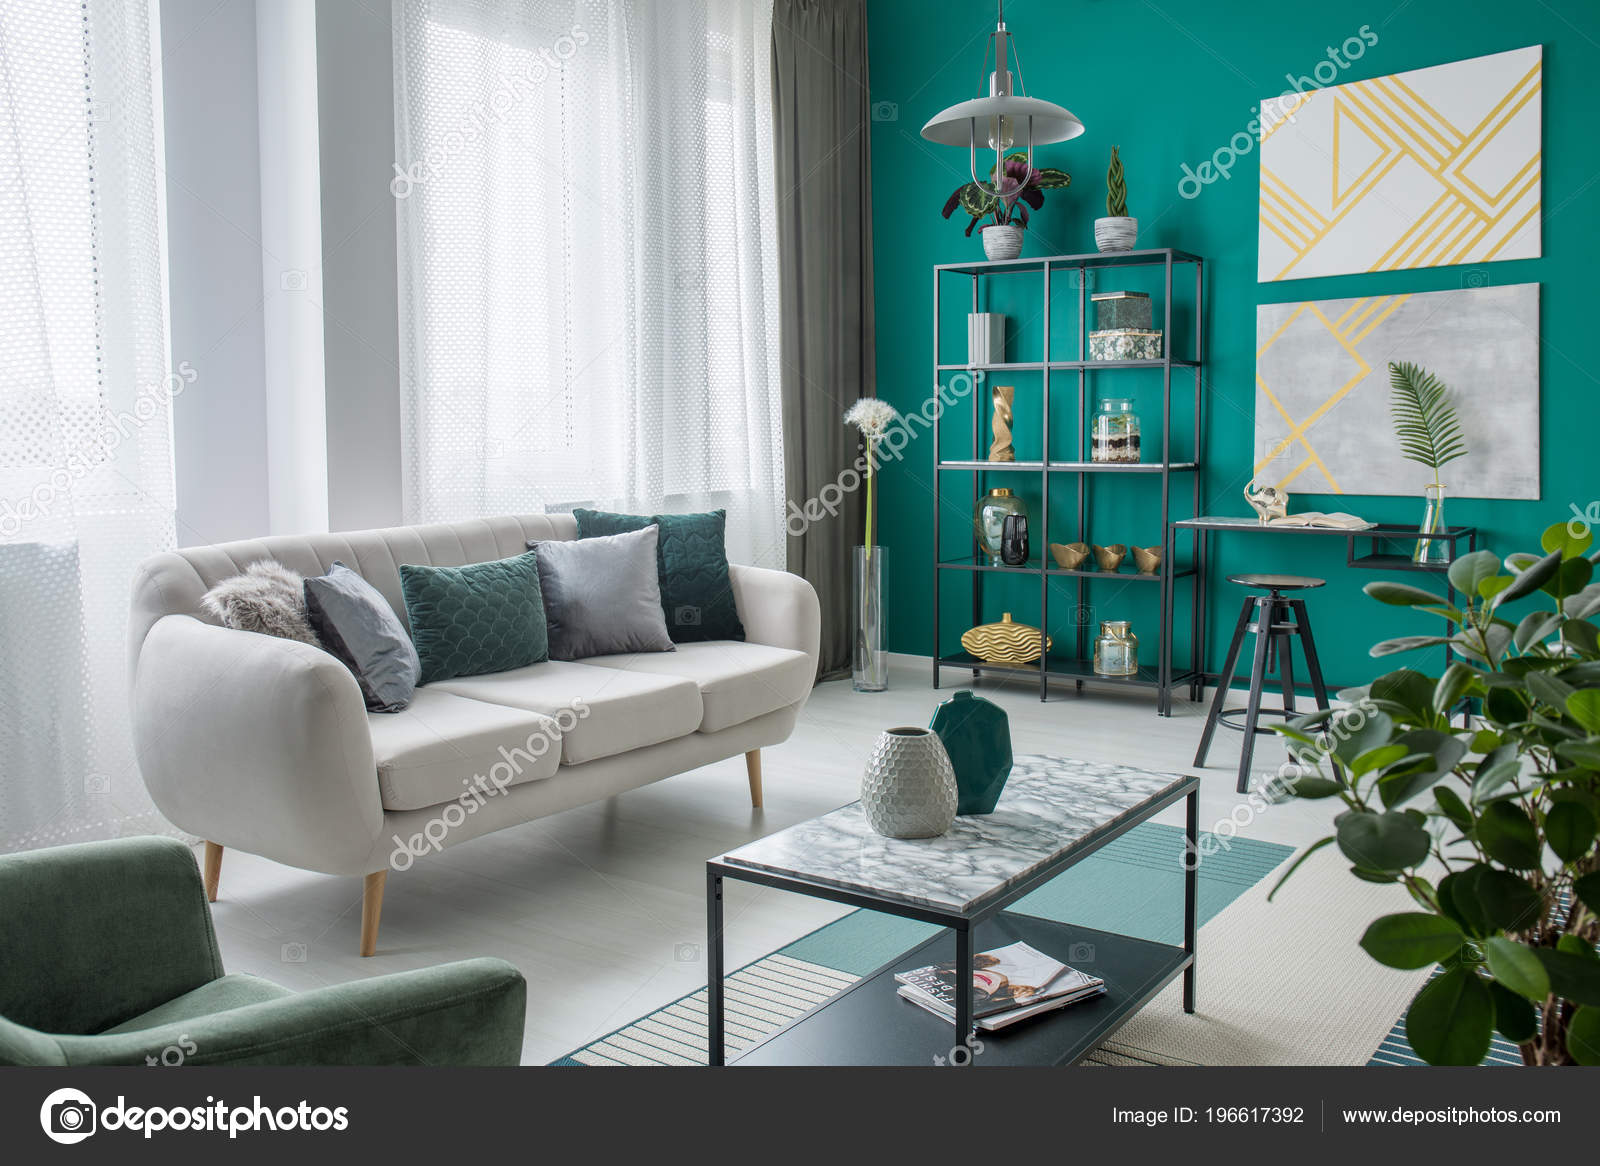 Beige Sofa Cozy Living Room Interior Gold Paintings Green ...